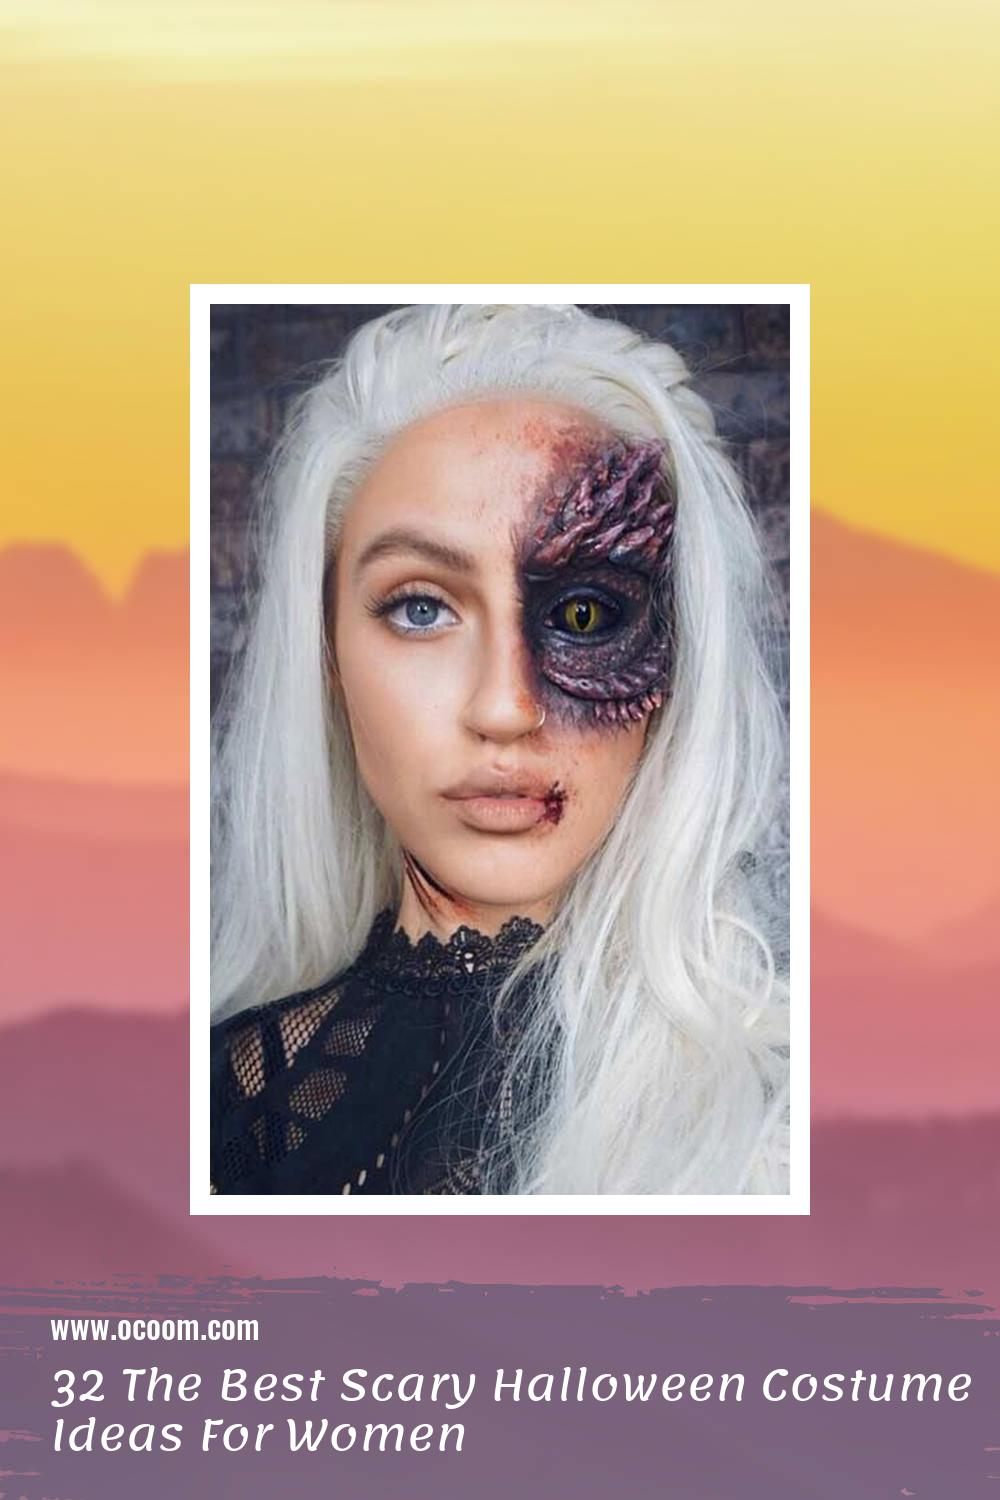 32 The Best Scary Halloween Costume Ideas For Women 19